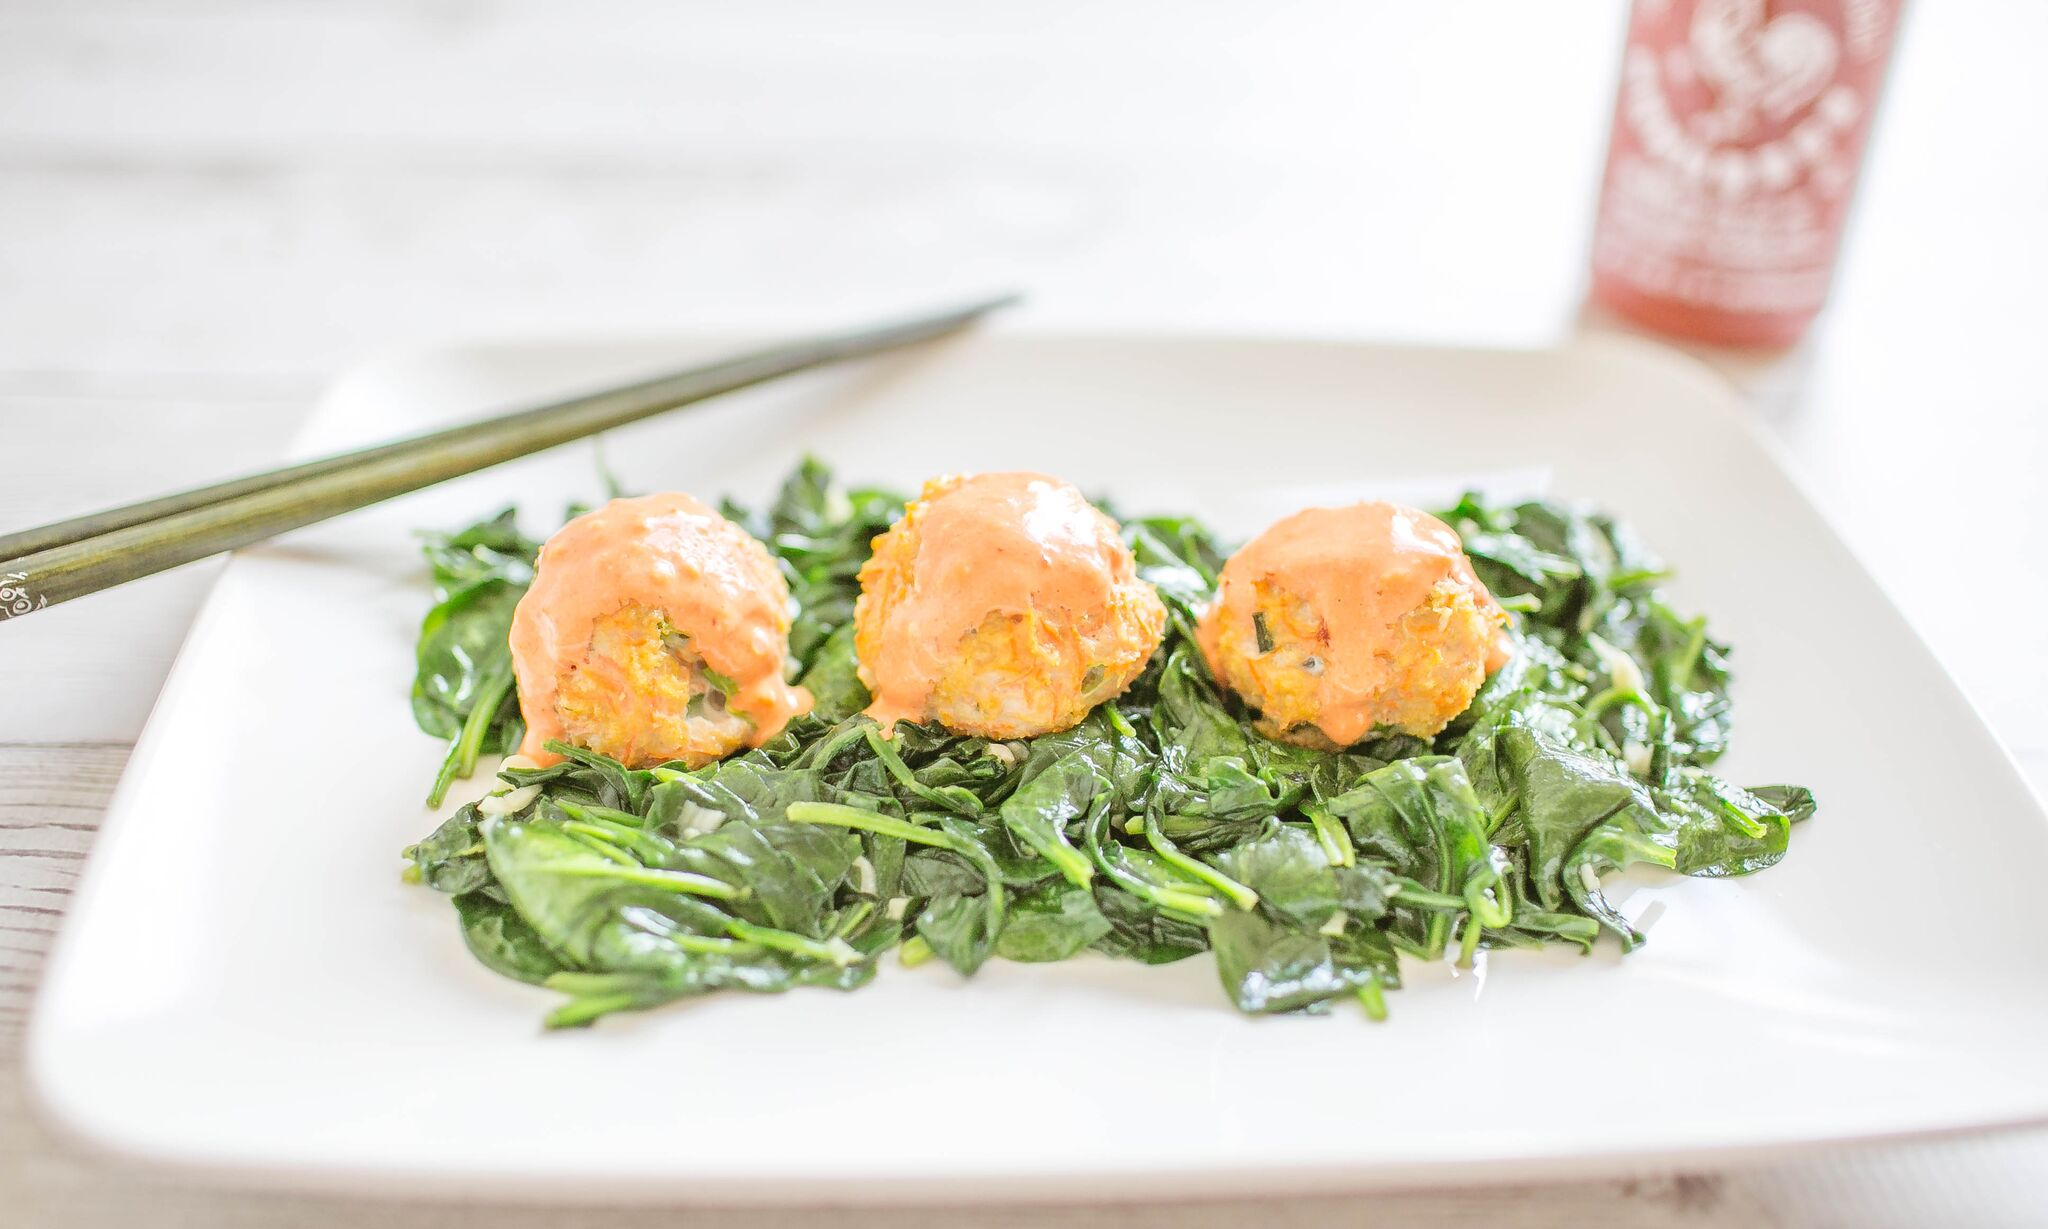 Serve chicken meatballs with sriracha sauce over a fresh greens.